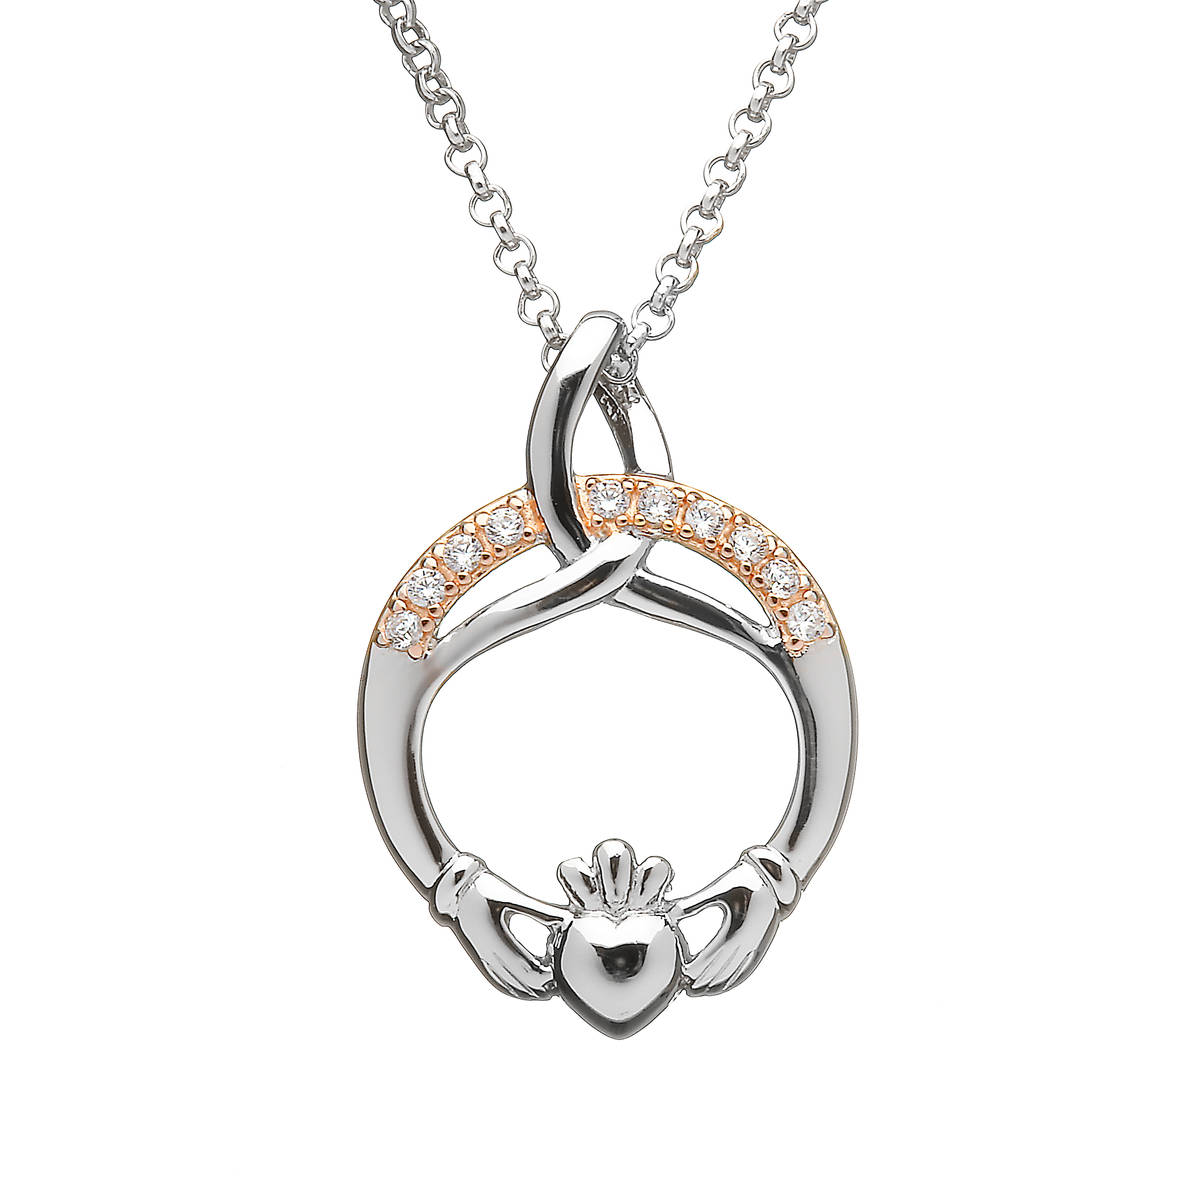 Silver Trinity Claddagh Pendant With Cubic Zirconia Stones In Rose Gold Plating